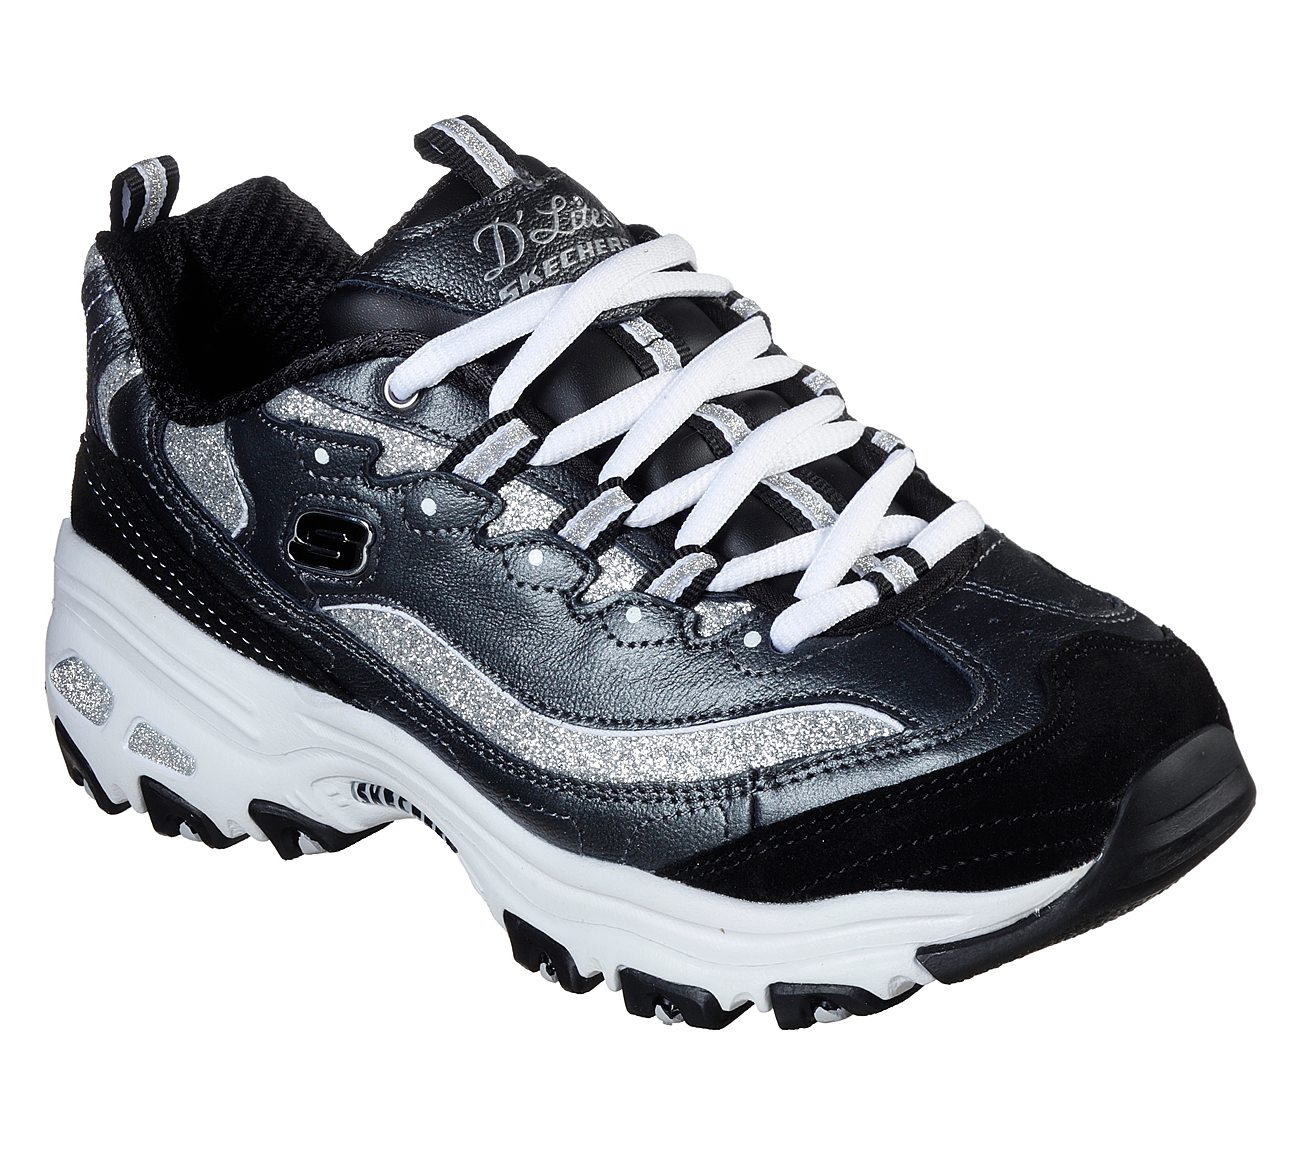 fe2547d336ff5 Buy SKECHERS D Lites - Glimmer Eve D Lites Shoes only  80.00